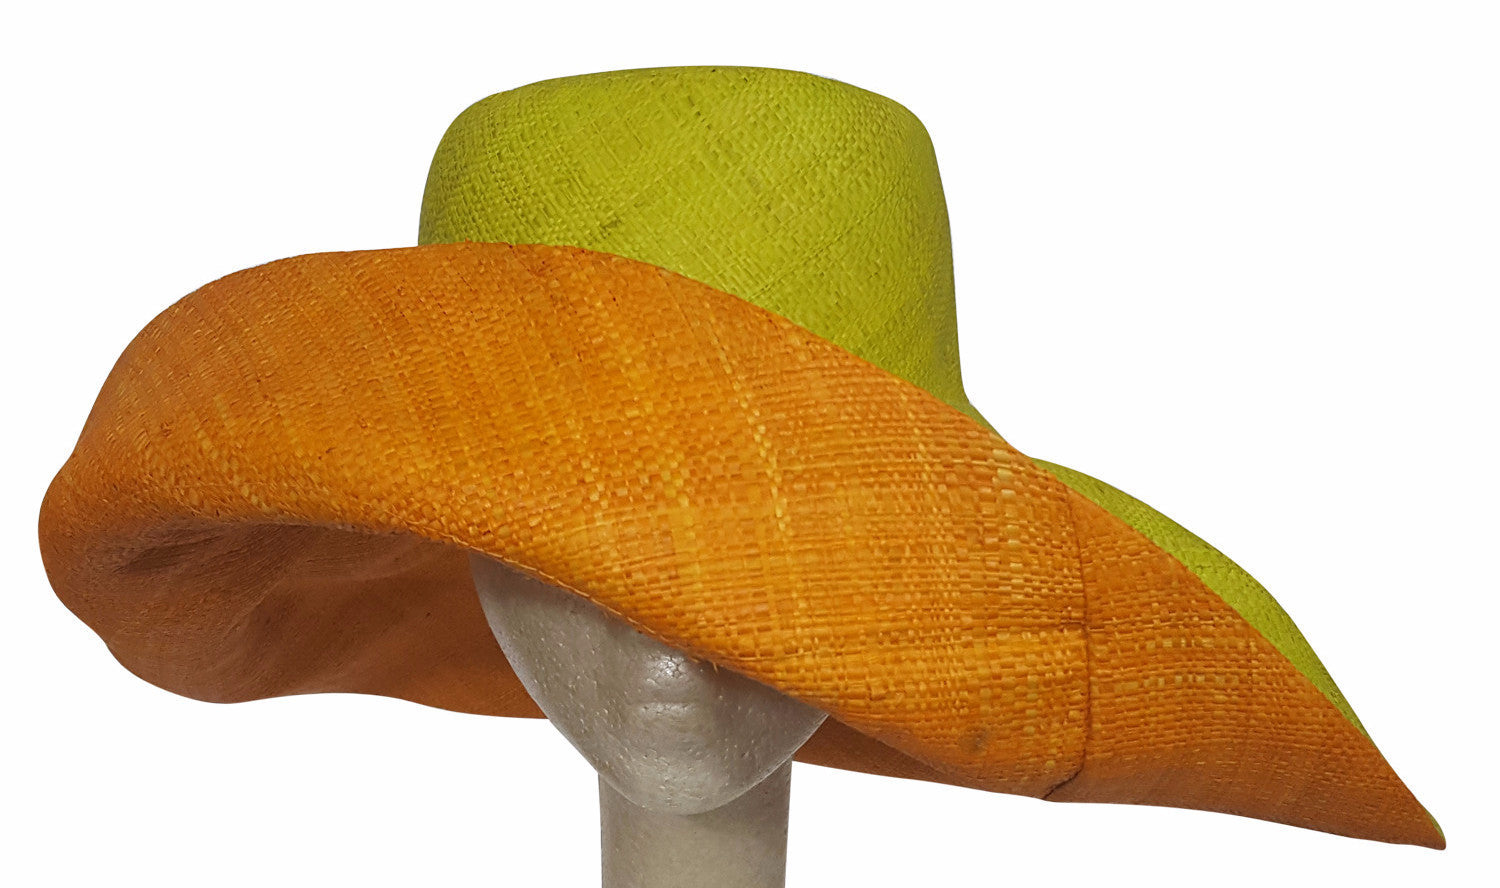 Abam: Hand Made Lime and Orange Madagascar Big Brim Raffia Sun Hat